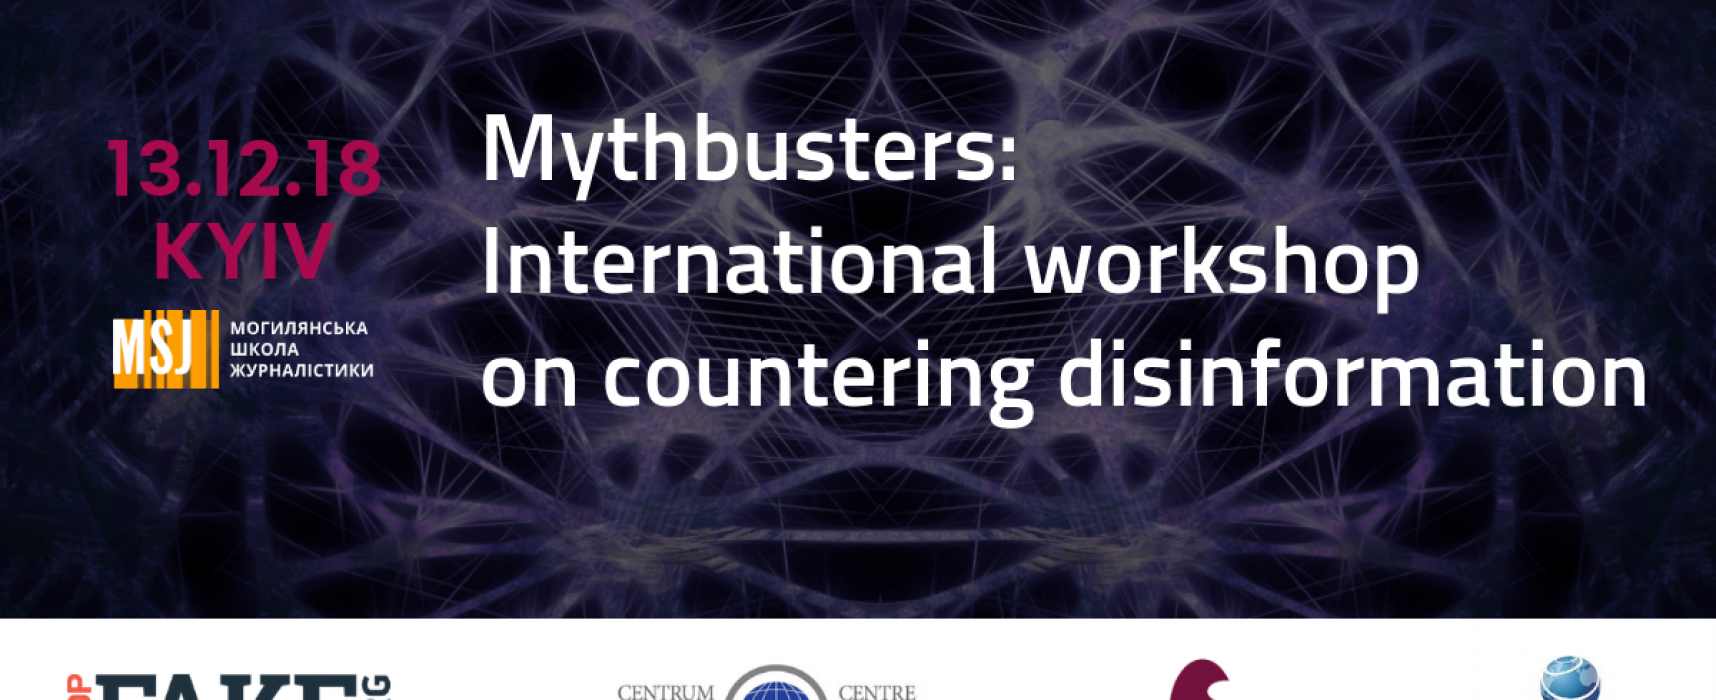 Mythbusters:  Internationaler Workshop zur Bekämpfung von Desinformationen